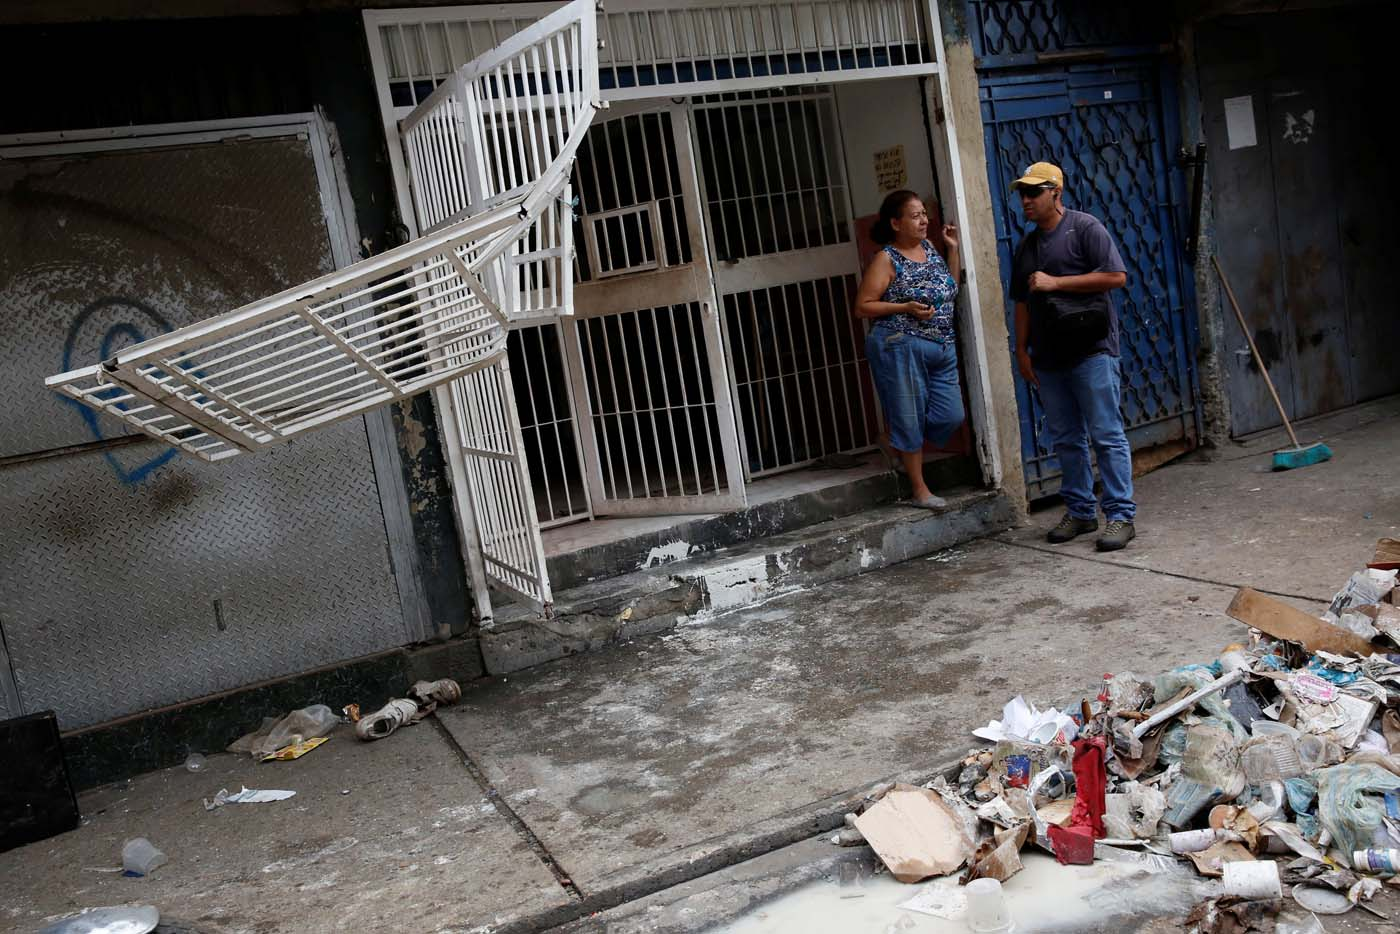 People talk next to the broken fences of a stall after it was looted in Caracas, Venezuela April 21, 2017. REUTERS/Carlos Garcia Rawlins